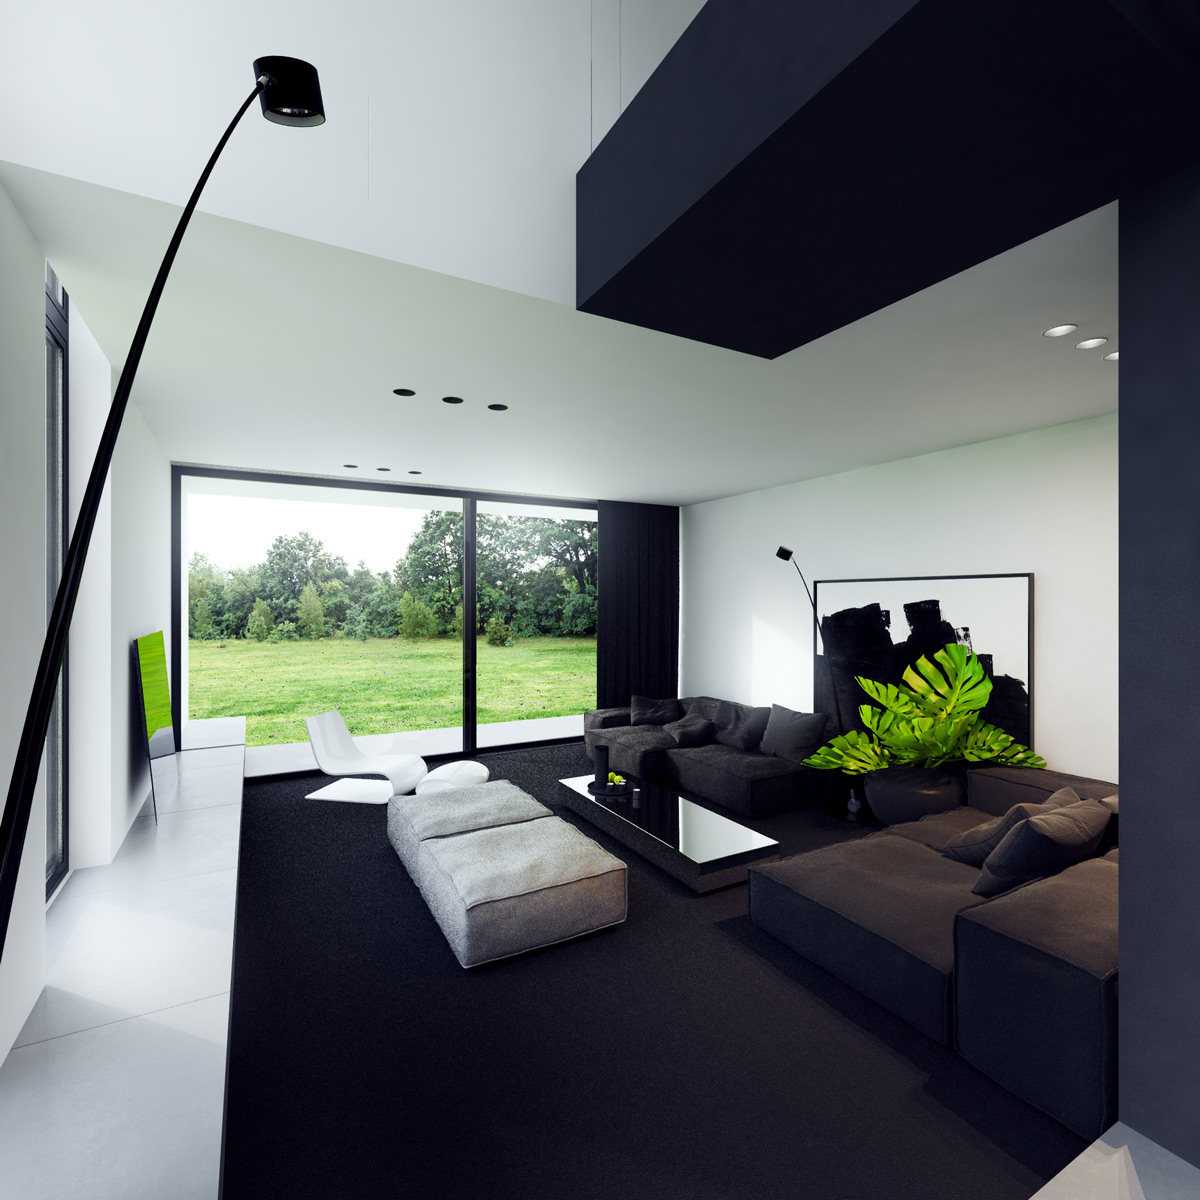 40 Gorgeously Minimalist Living Rooms That Find Substance in Simplicity images 13